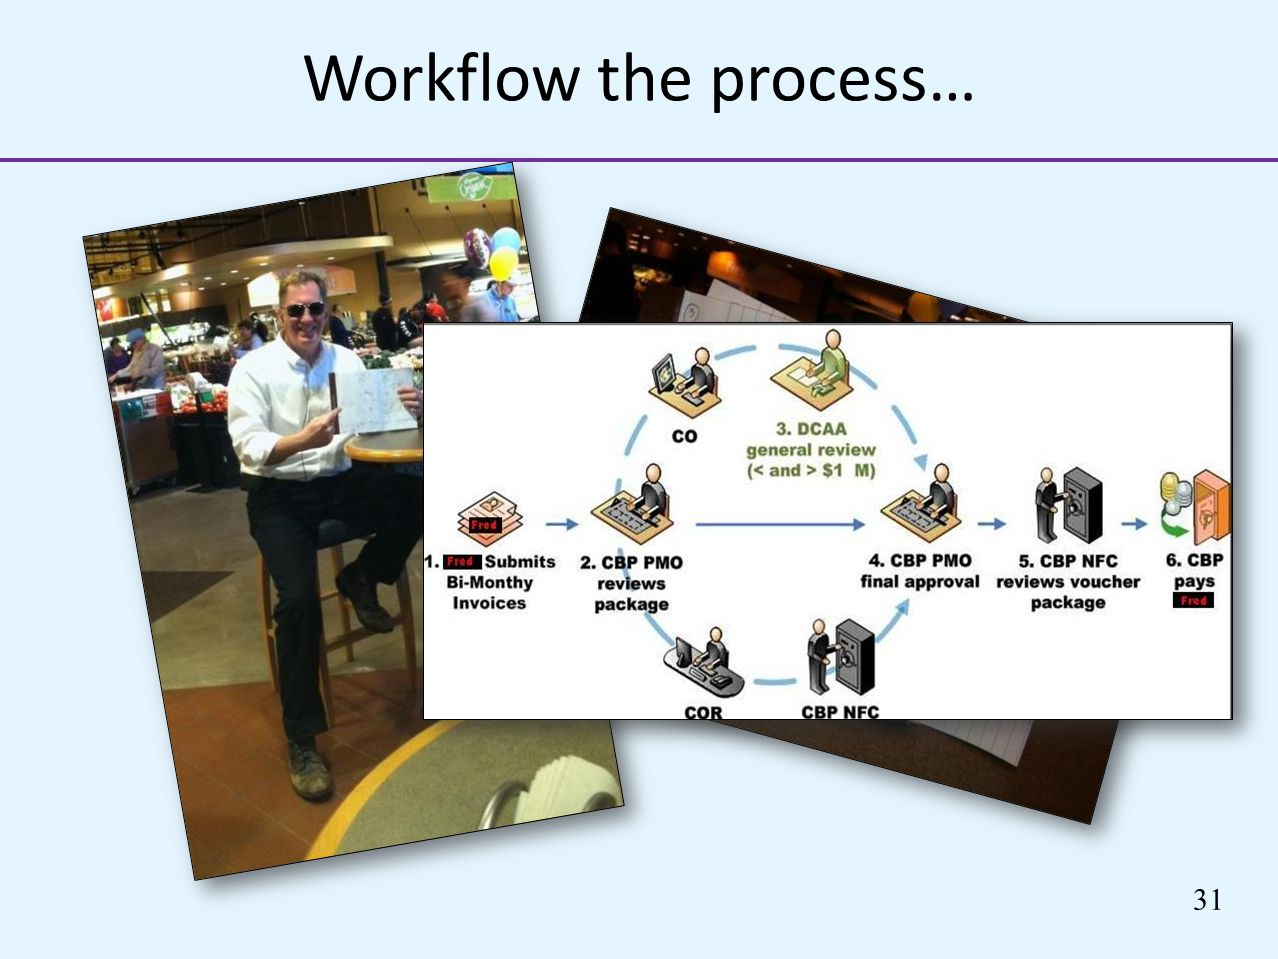 Workflow the process… Workflow the processes involved….